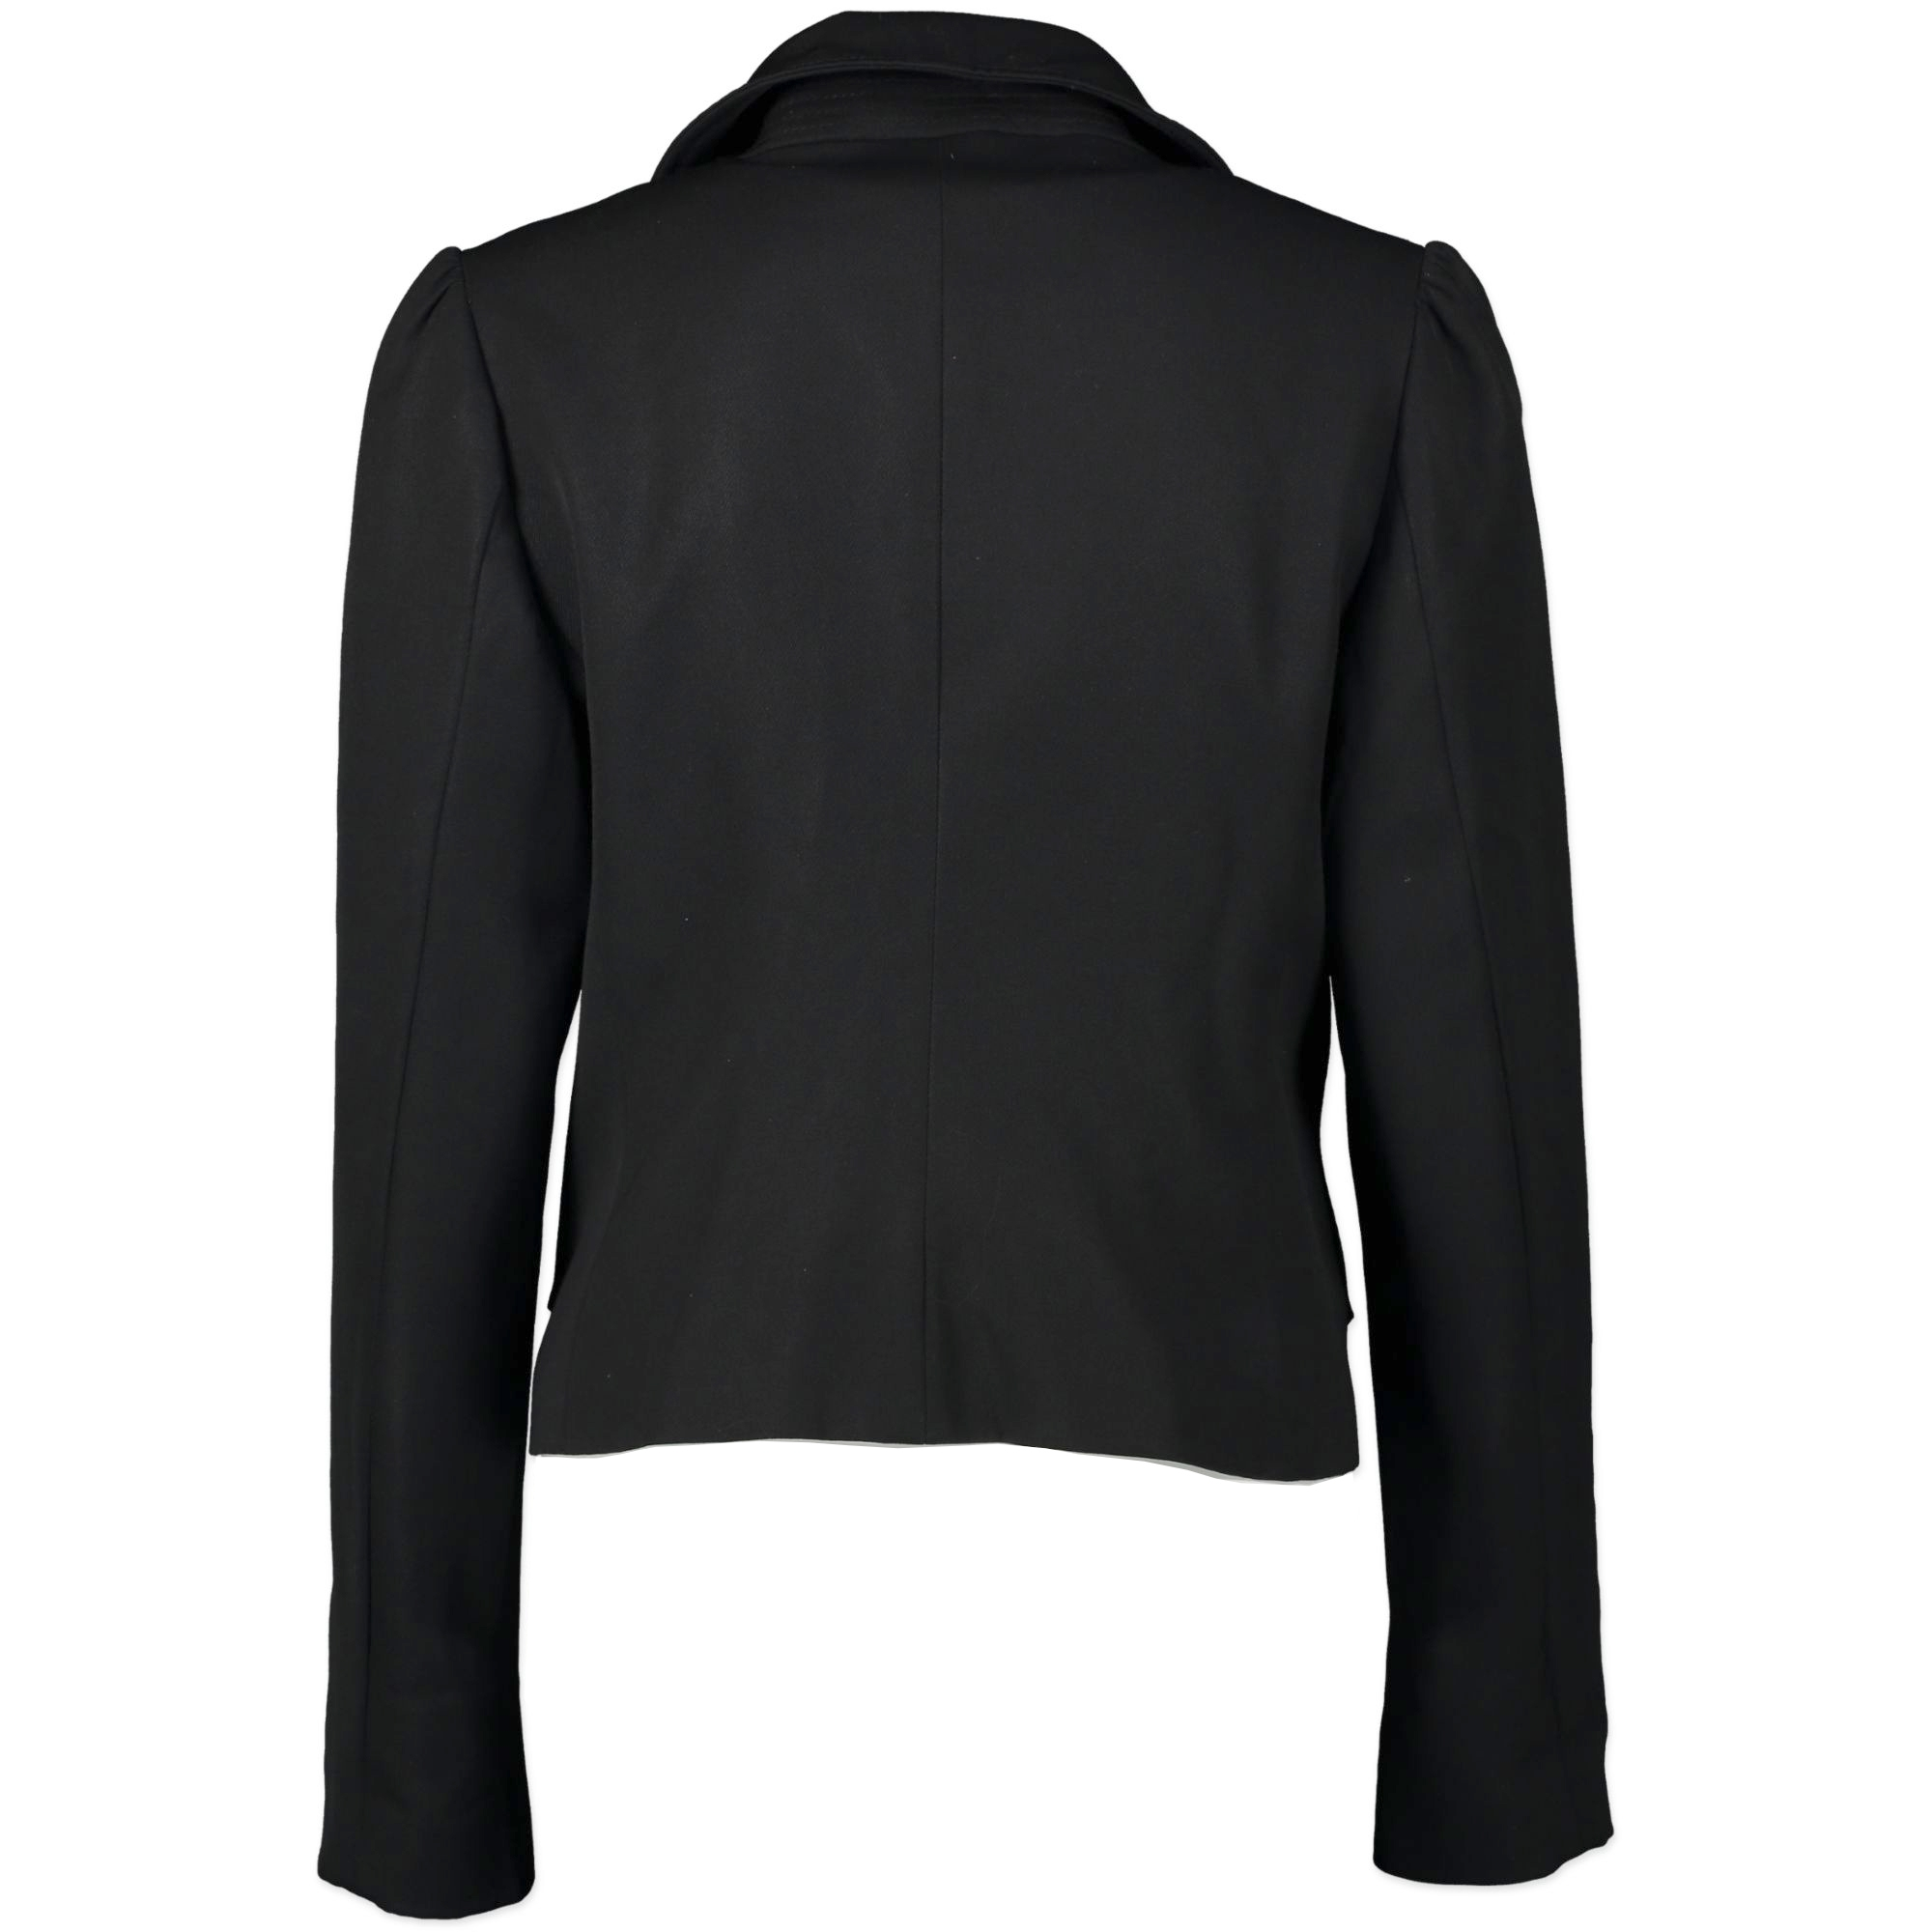 Burberry Cropped Black Trench Jacket - Size 36